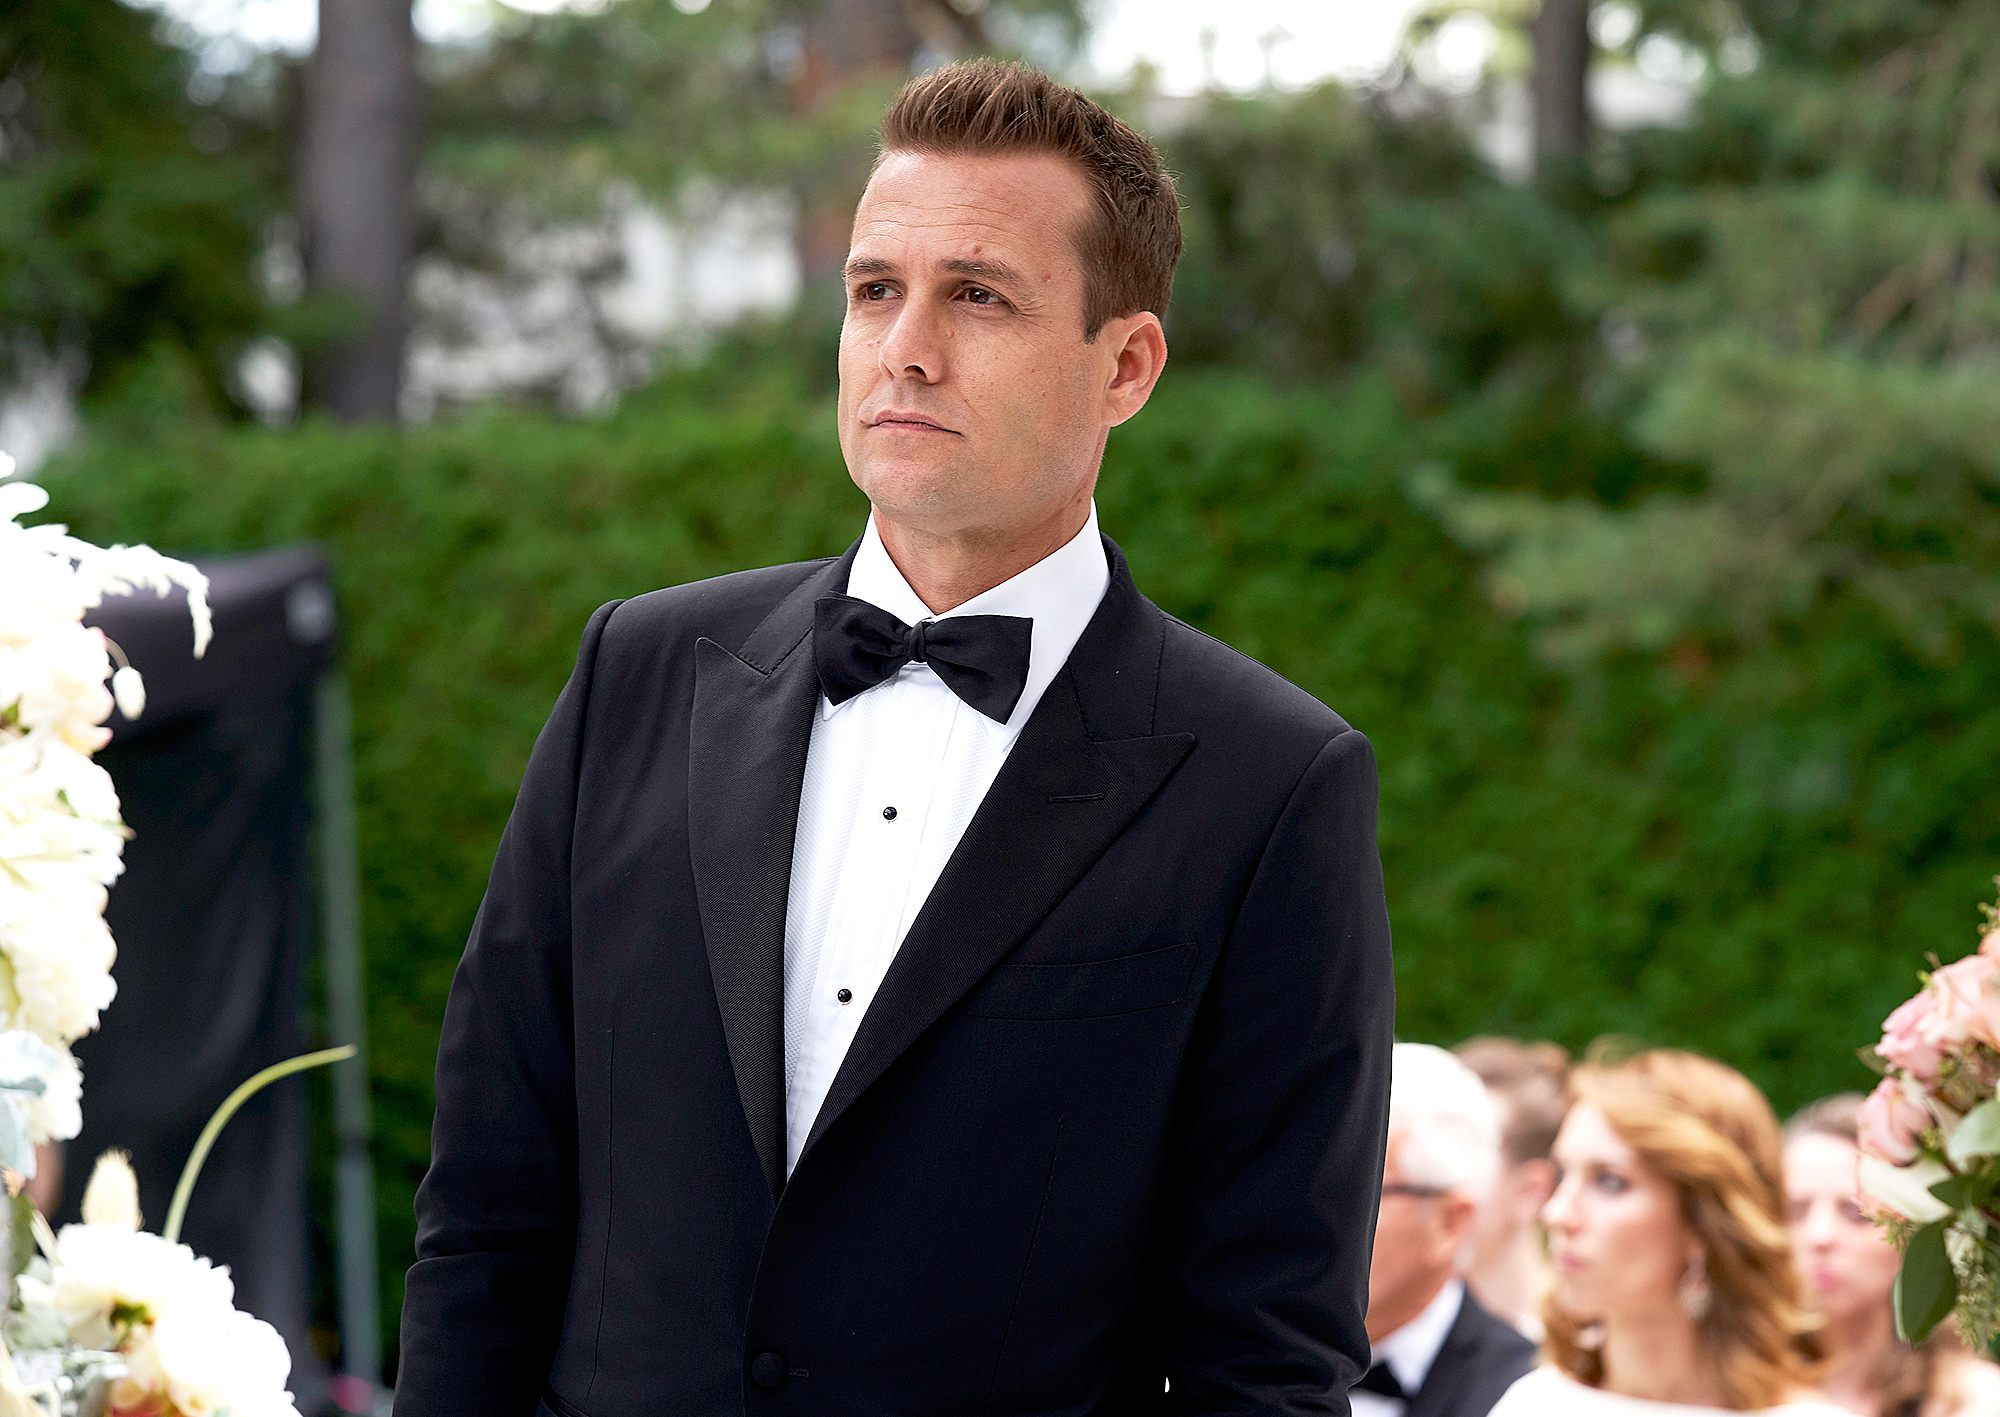 Suits-Makes-Playful-Jab-at-Prince-Harry-in-Series-Finale